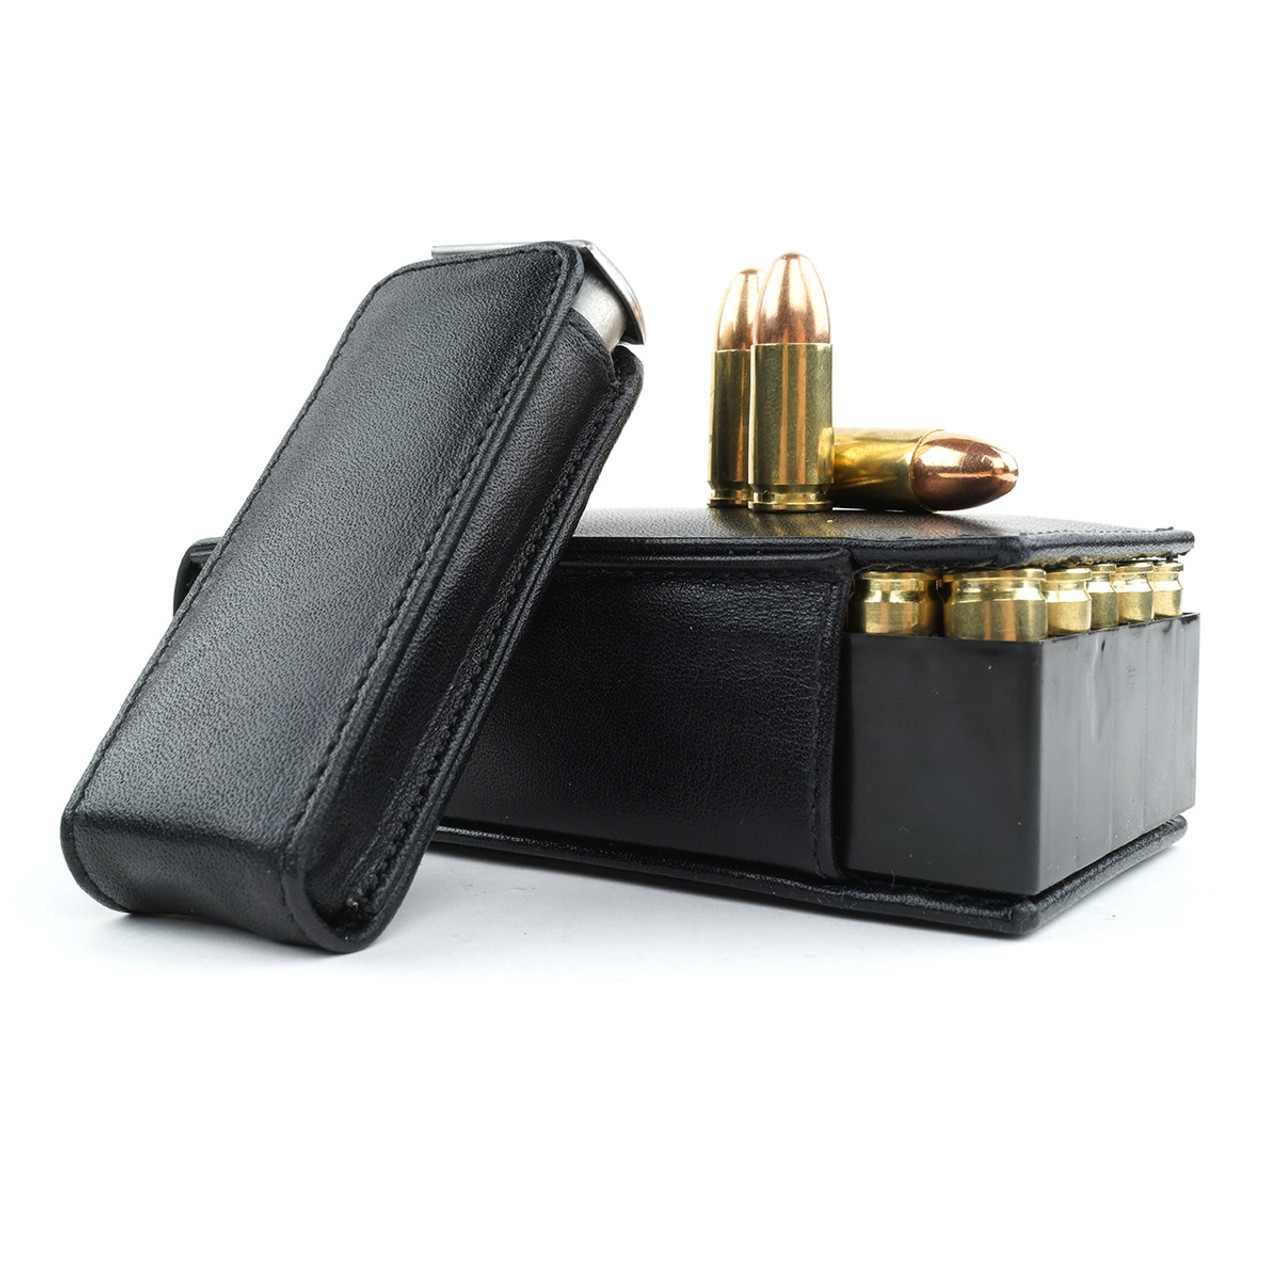 Glock 33 Leather Bullet Brick